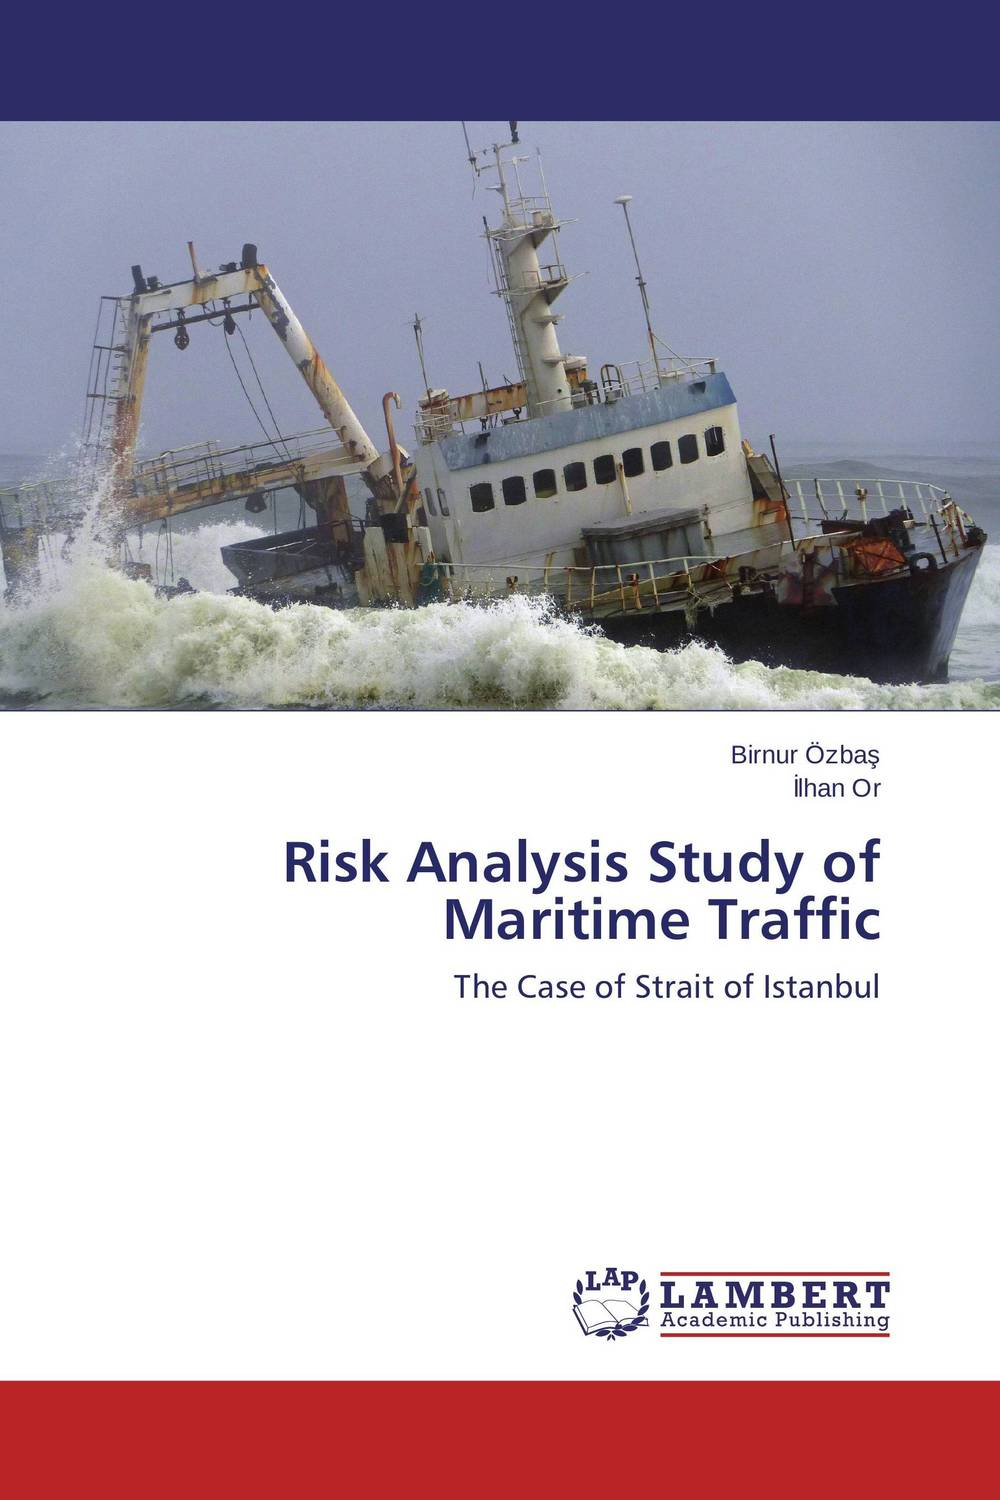 Risk Analysis Study of Maritime Traffic maritime safety